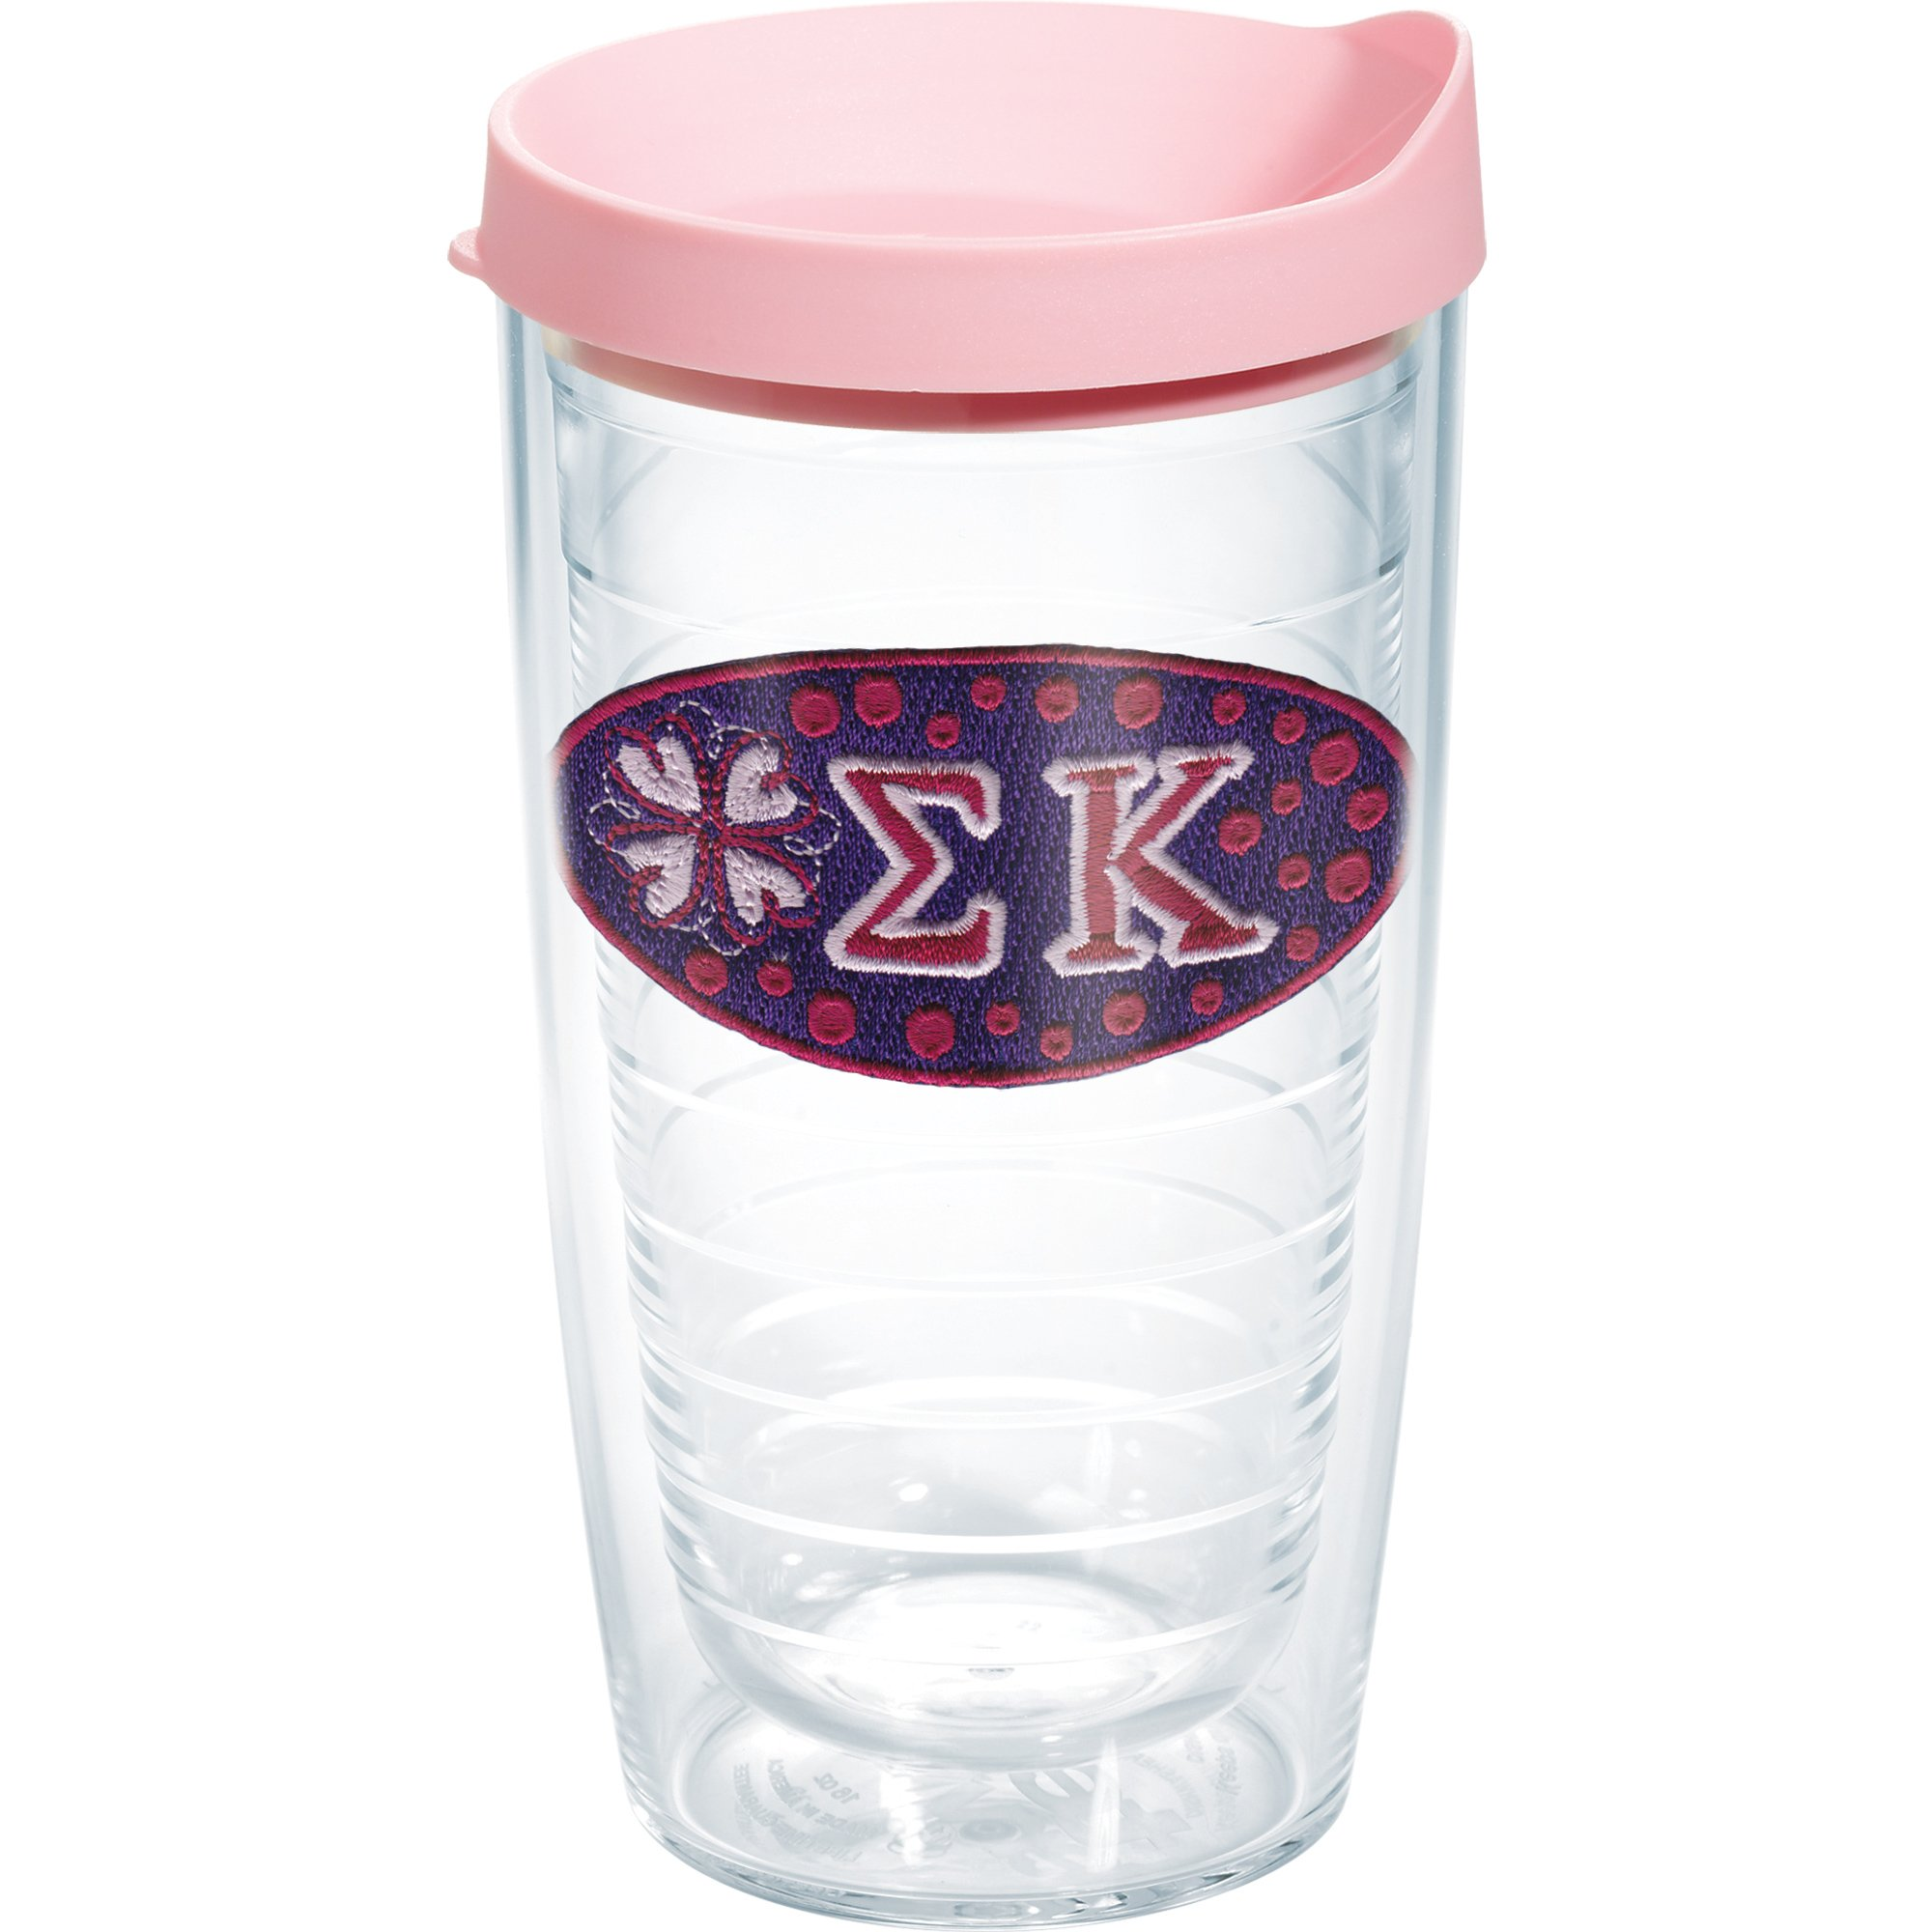 Tervis 1080029 Sorority - Sigma Kappa Tumbler with Emblem and Pink Lid 16oz, Clear by Tervis (Image #1)